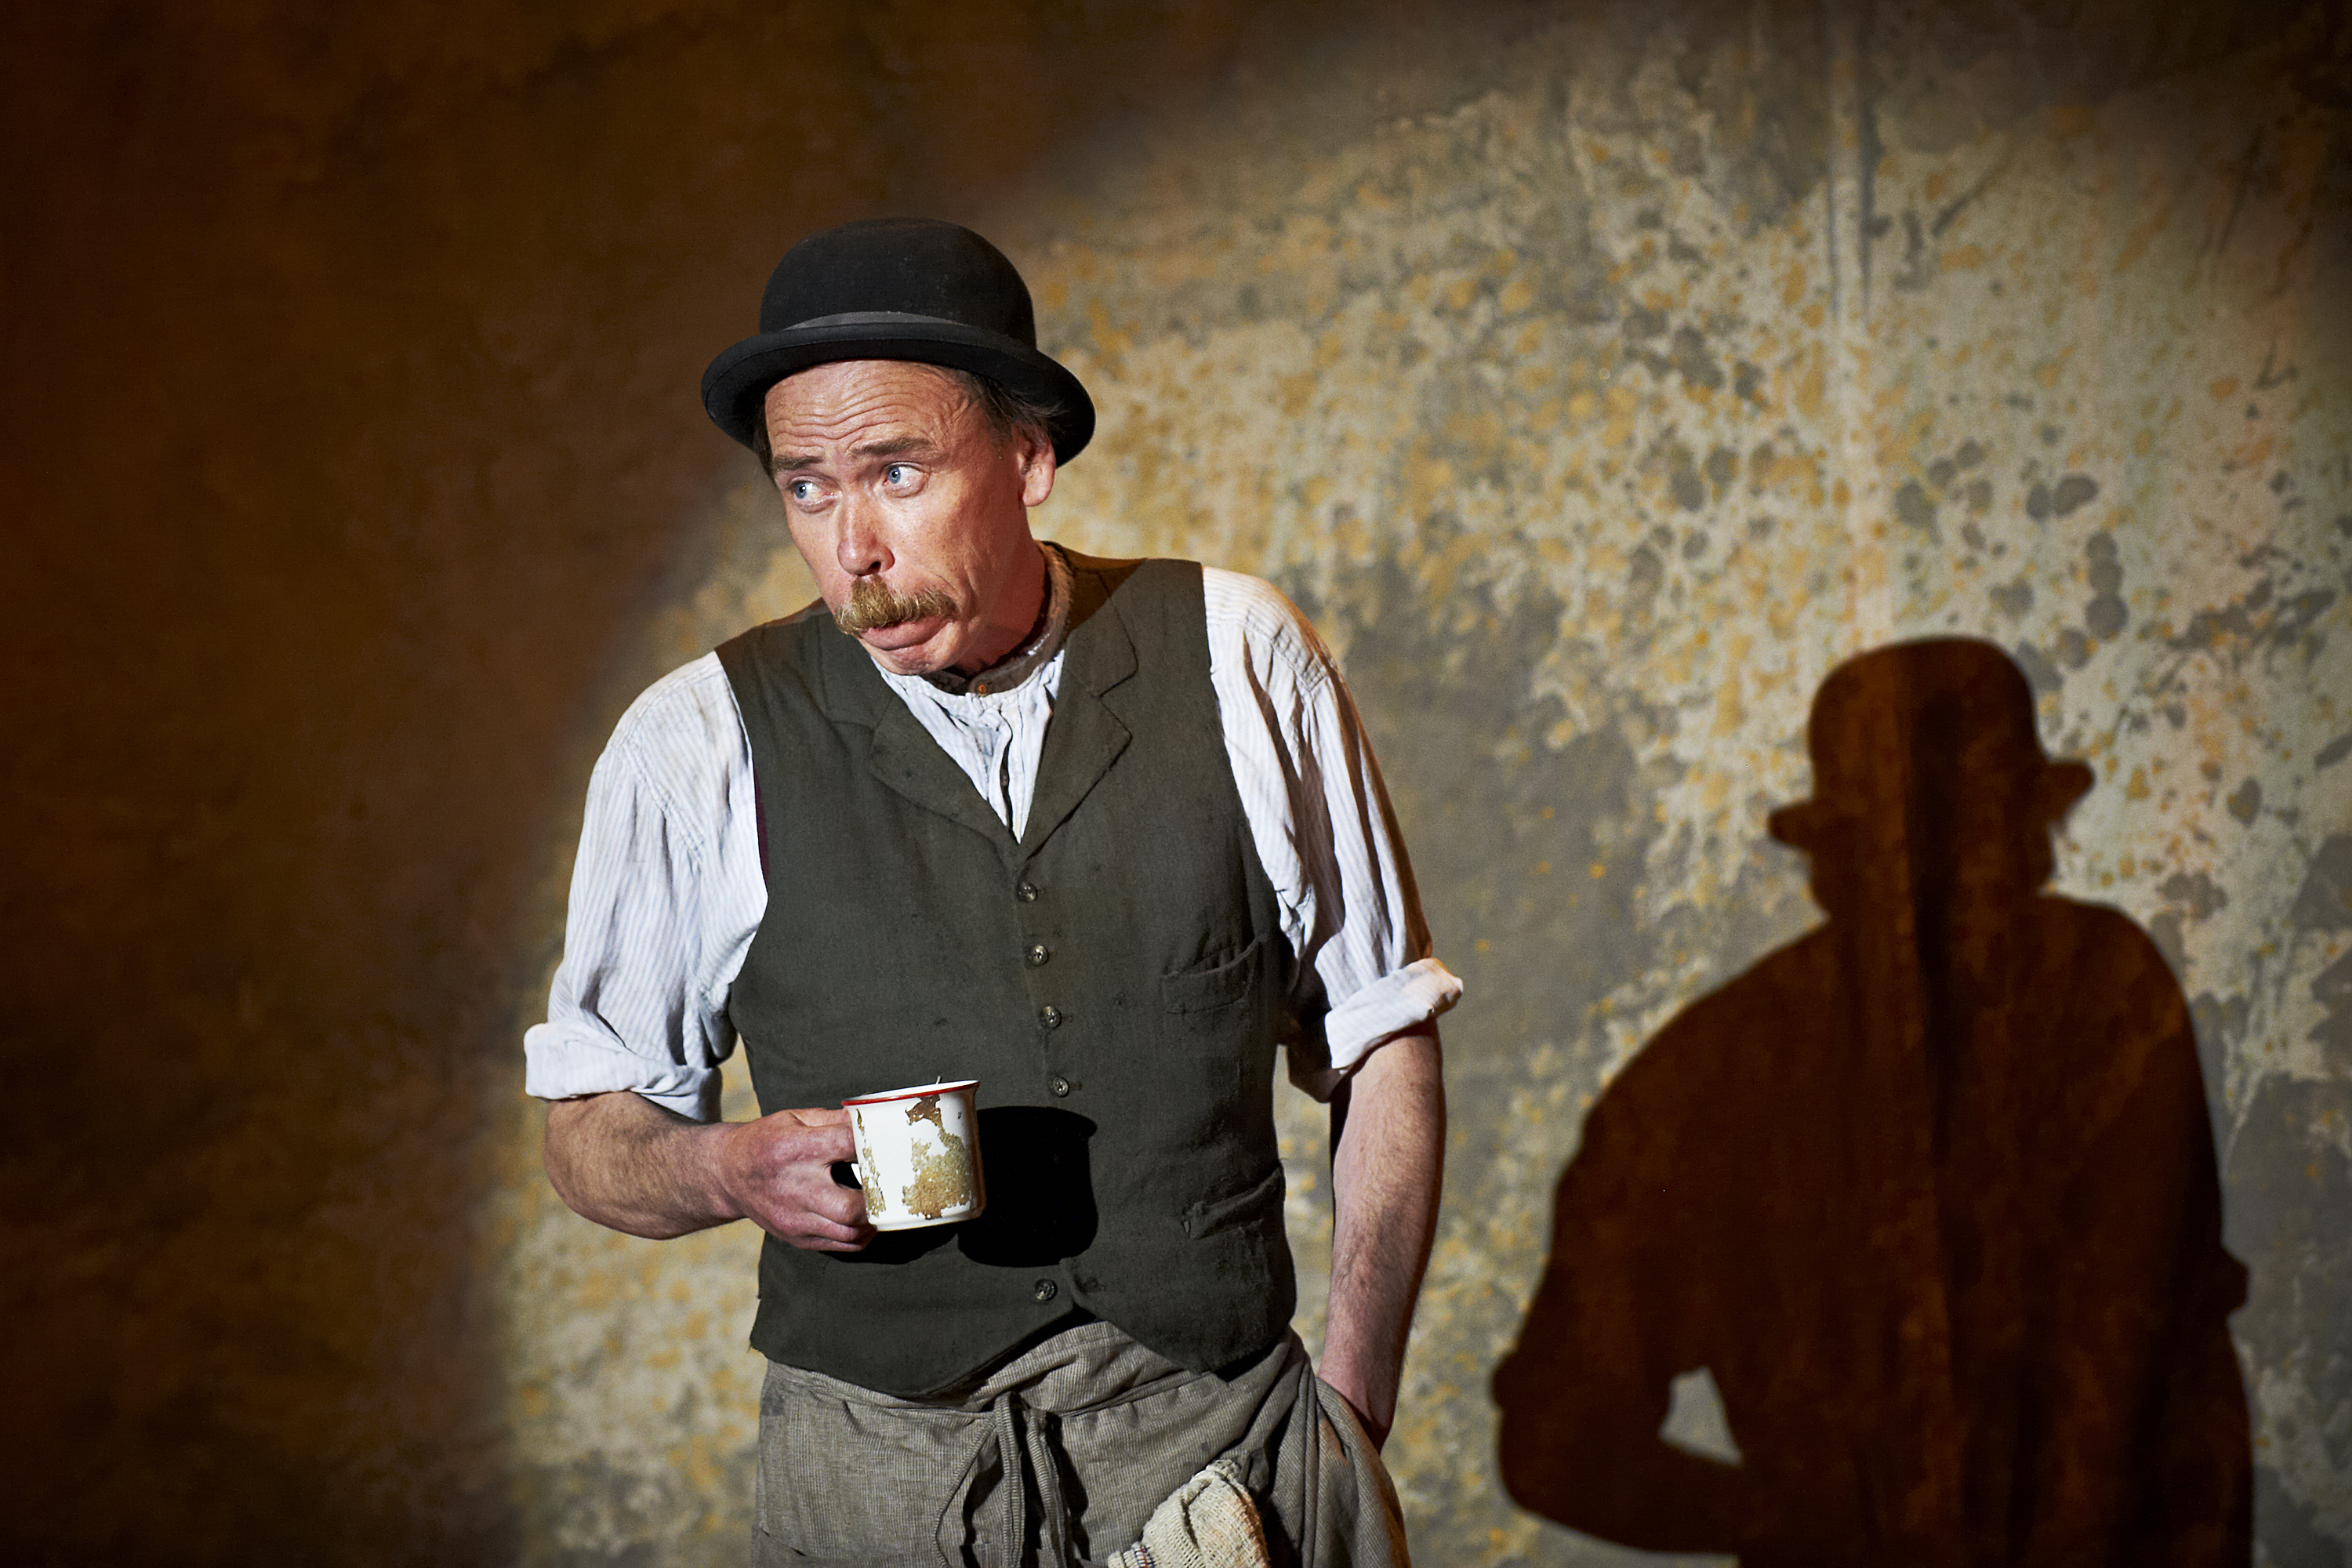 The Plough and the Stars 2012 Abbey Theatre, Joe Hanley, Photo Credit Ros Kavanagh